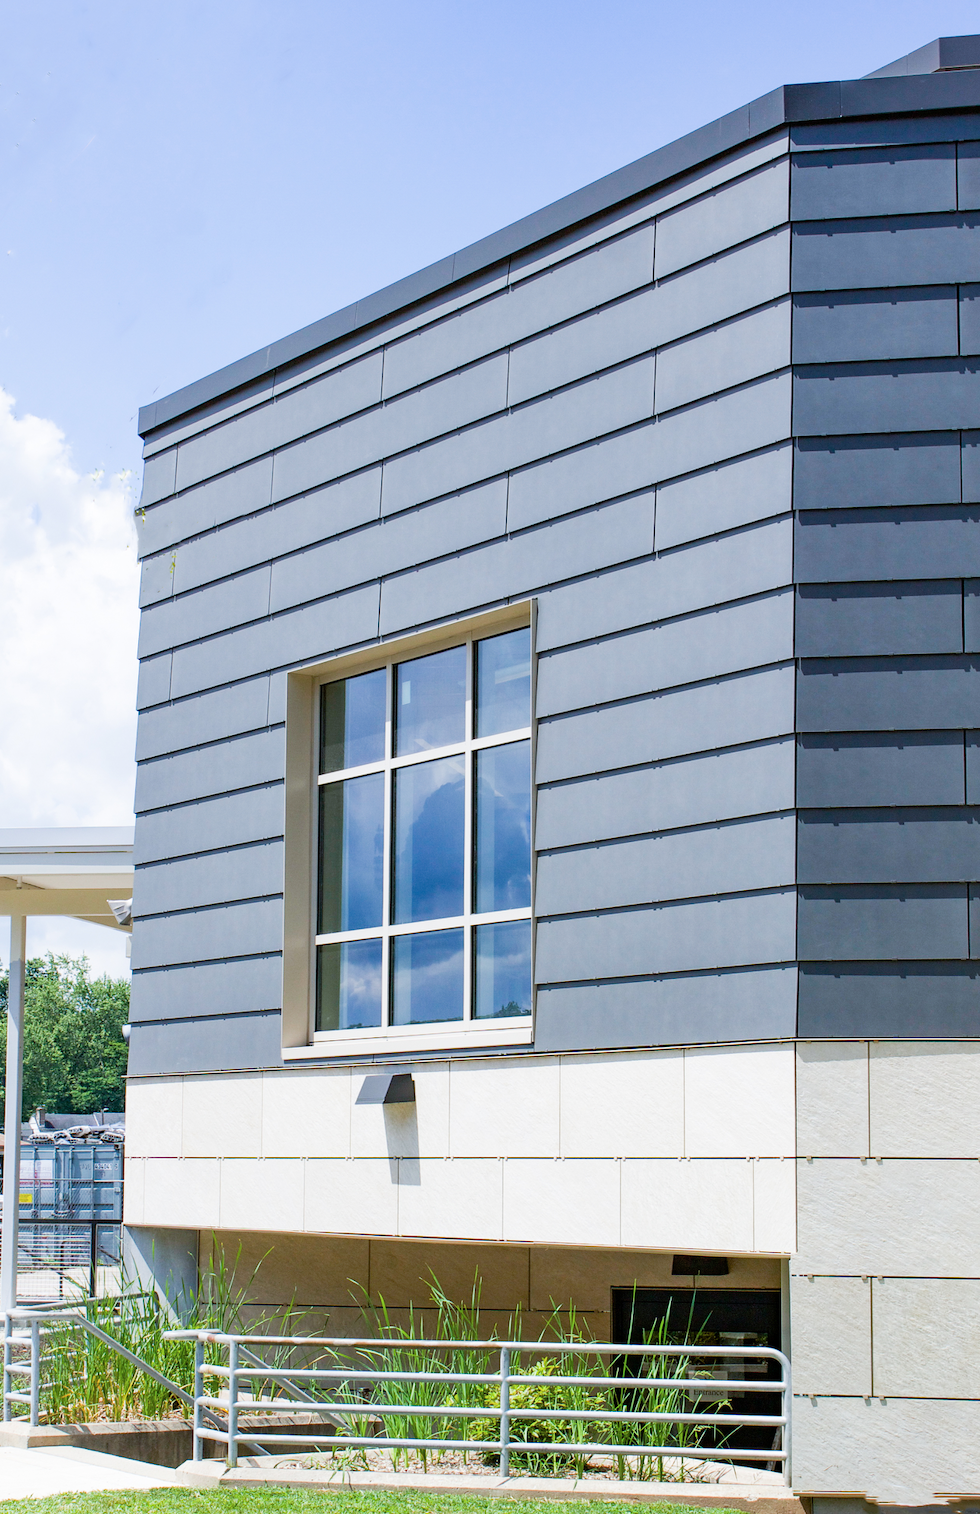 Cladding Corp Quakertown High School Swisspearl Ceramic5 Rainscreen